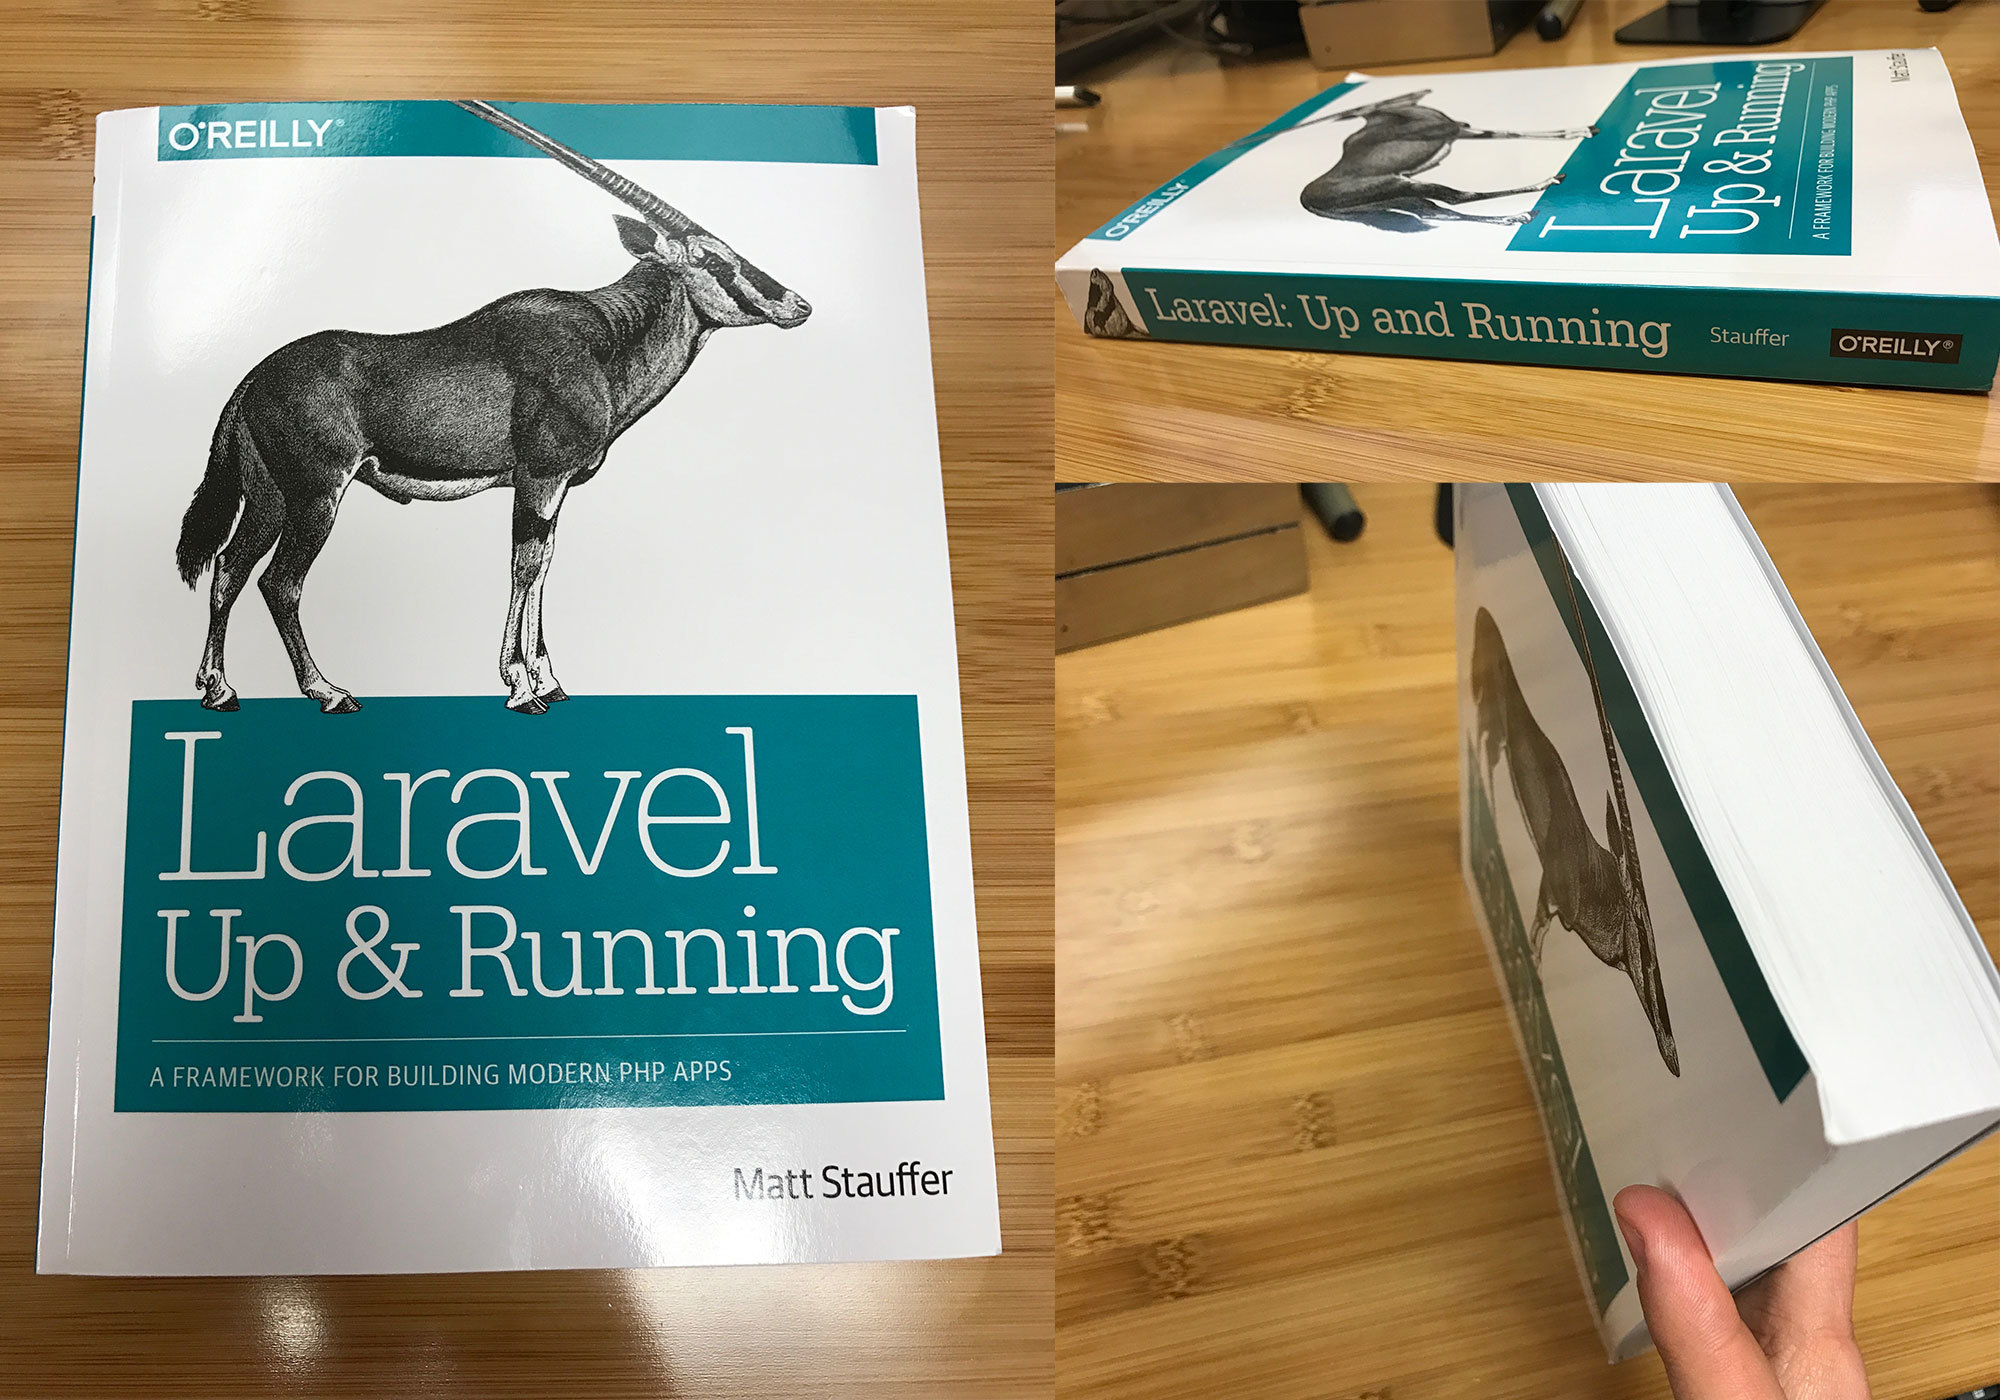 Cover shots  - lur cover shots - Laravel: Up & Running is launched and available for order!